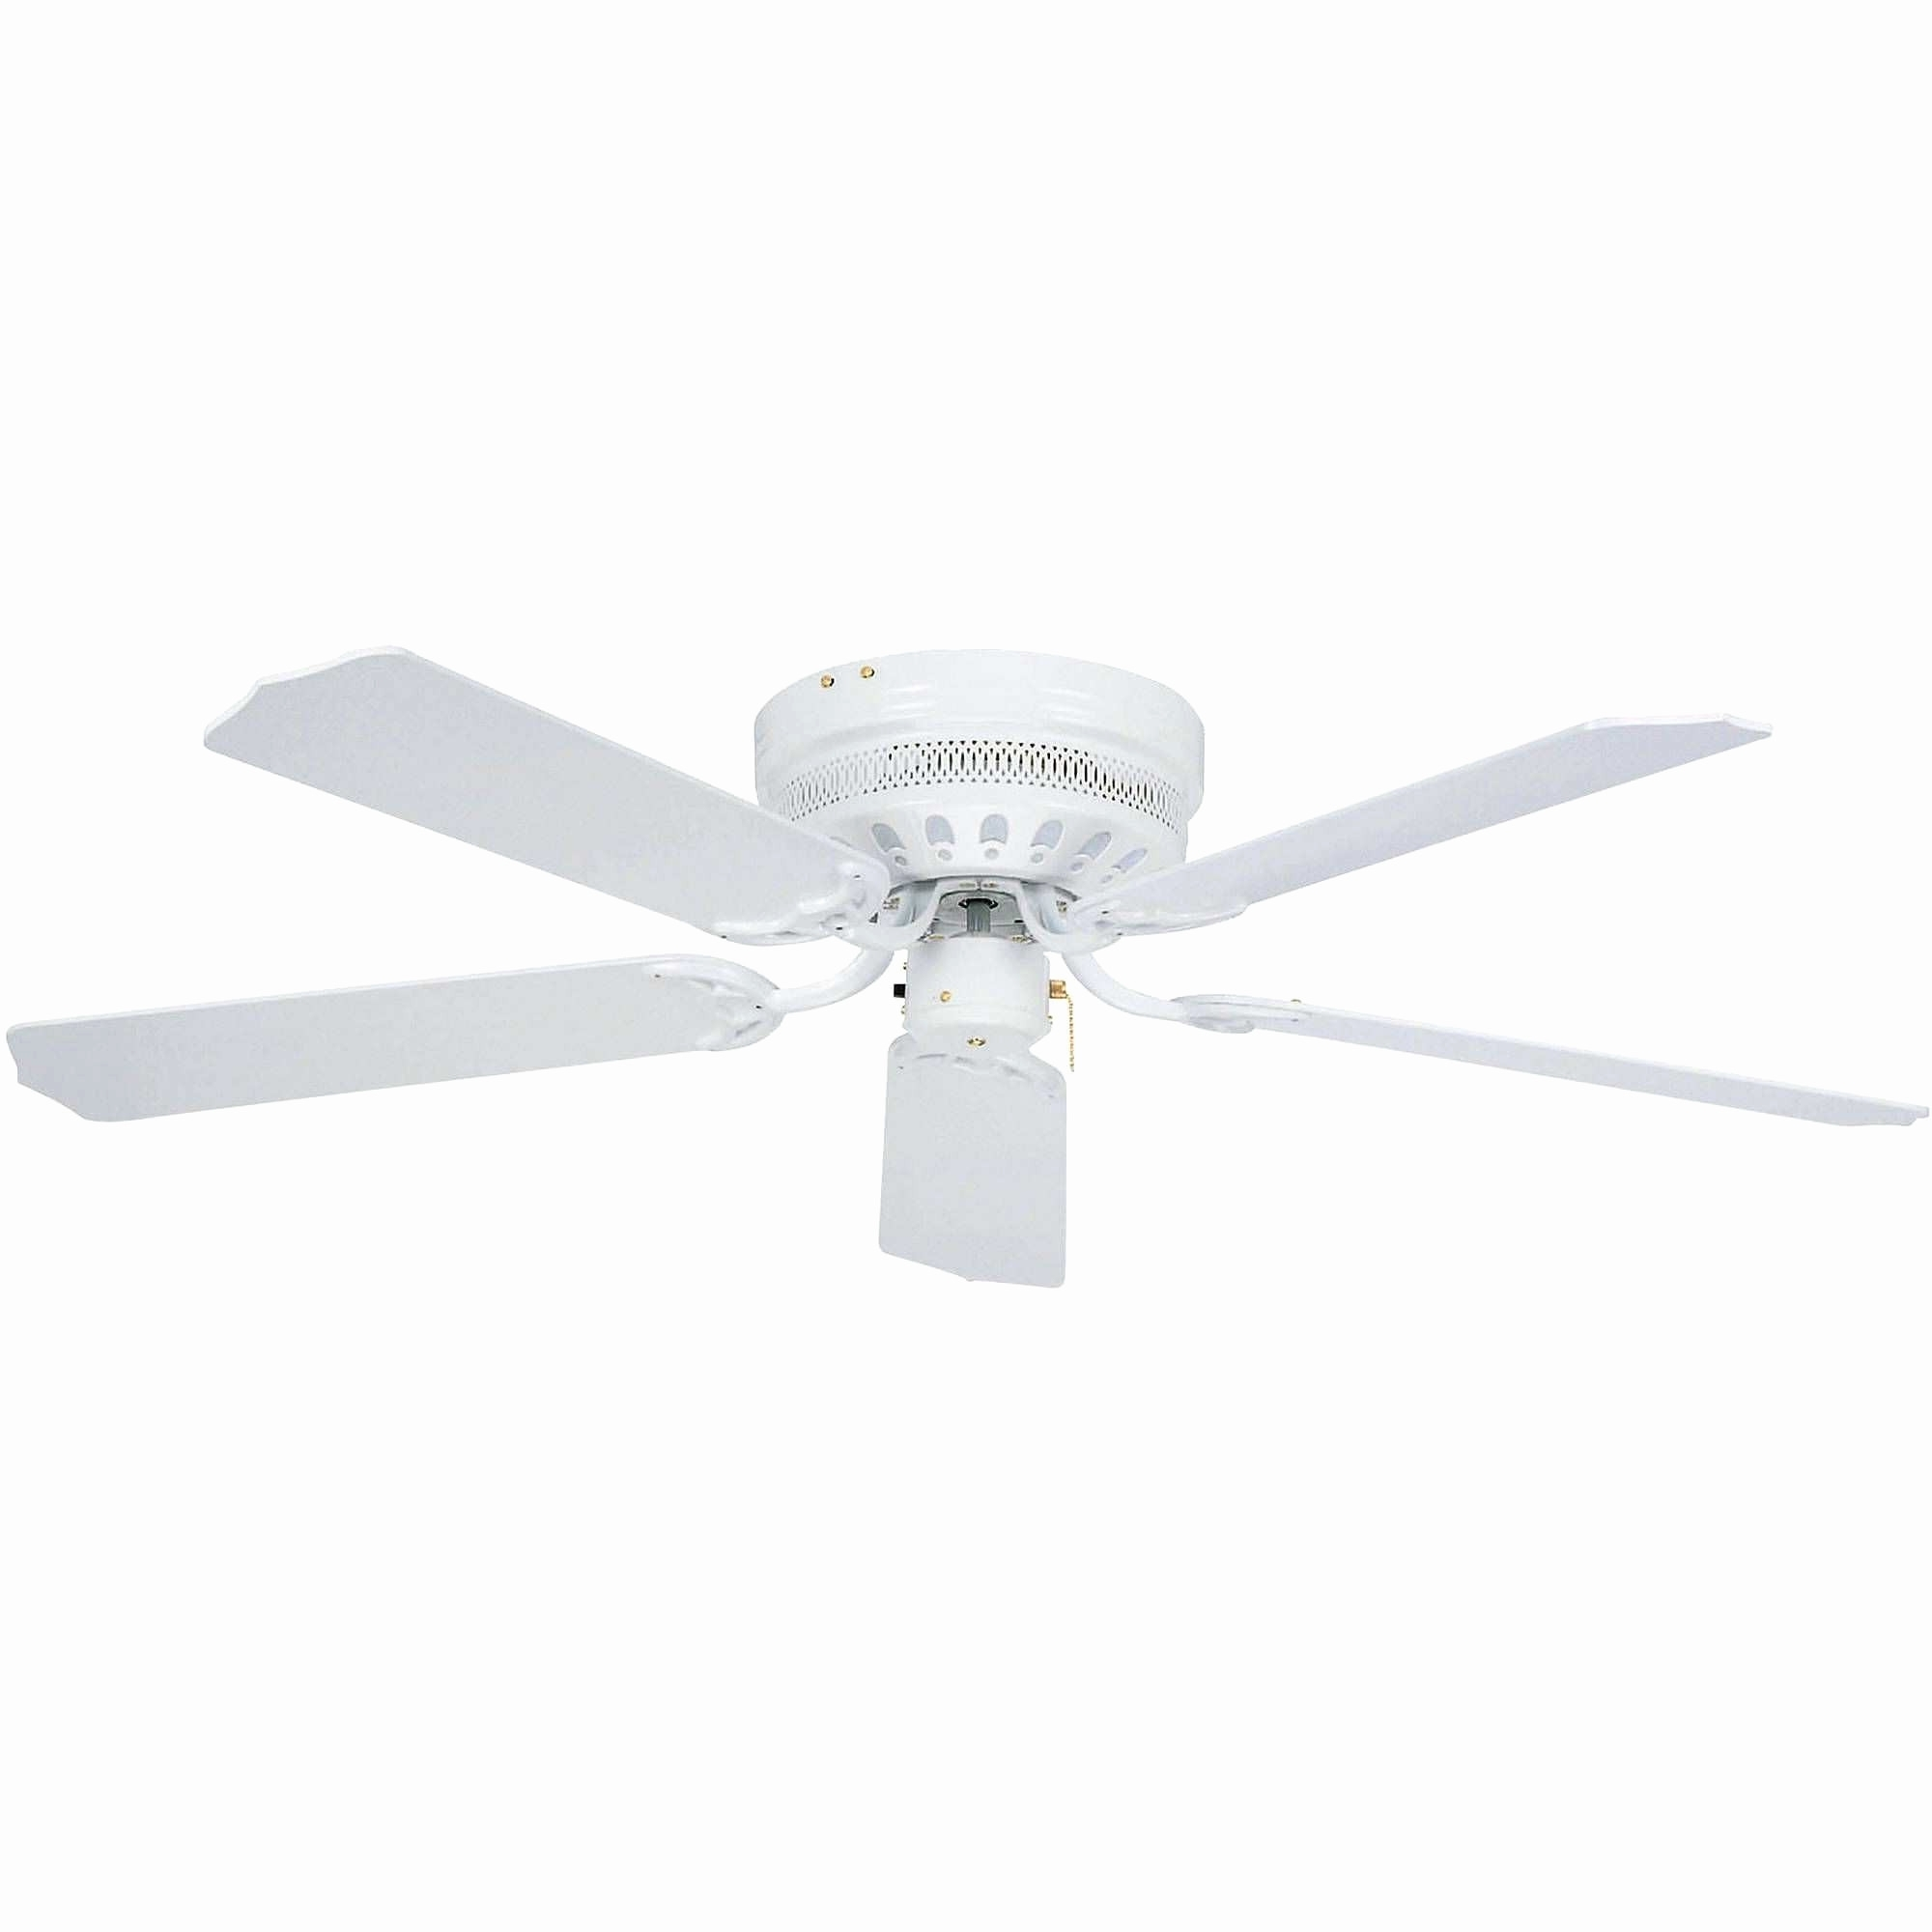 Outdoor Ceiling Fans At Walmart Inside Most Recently Released White Outdoor Ceiling Fan With Light Luxury Outdoor Ceiling Fans (Gallery 20 of 20)